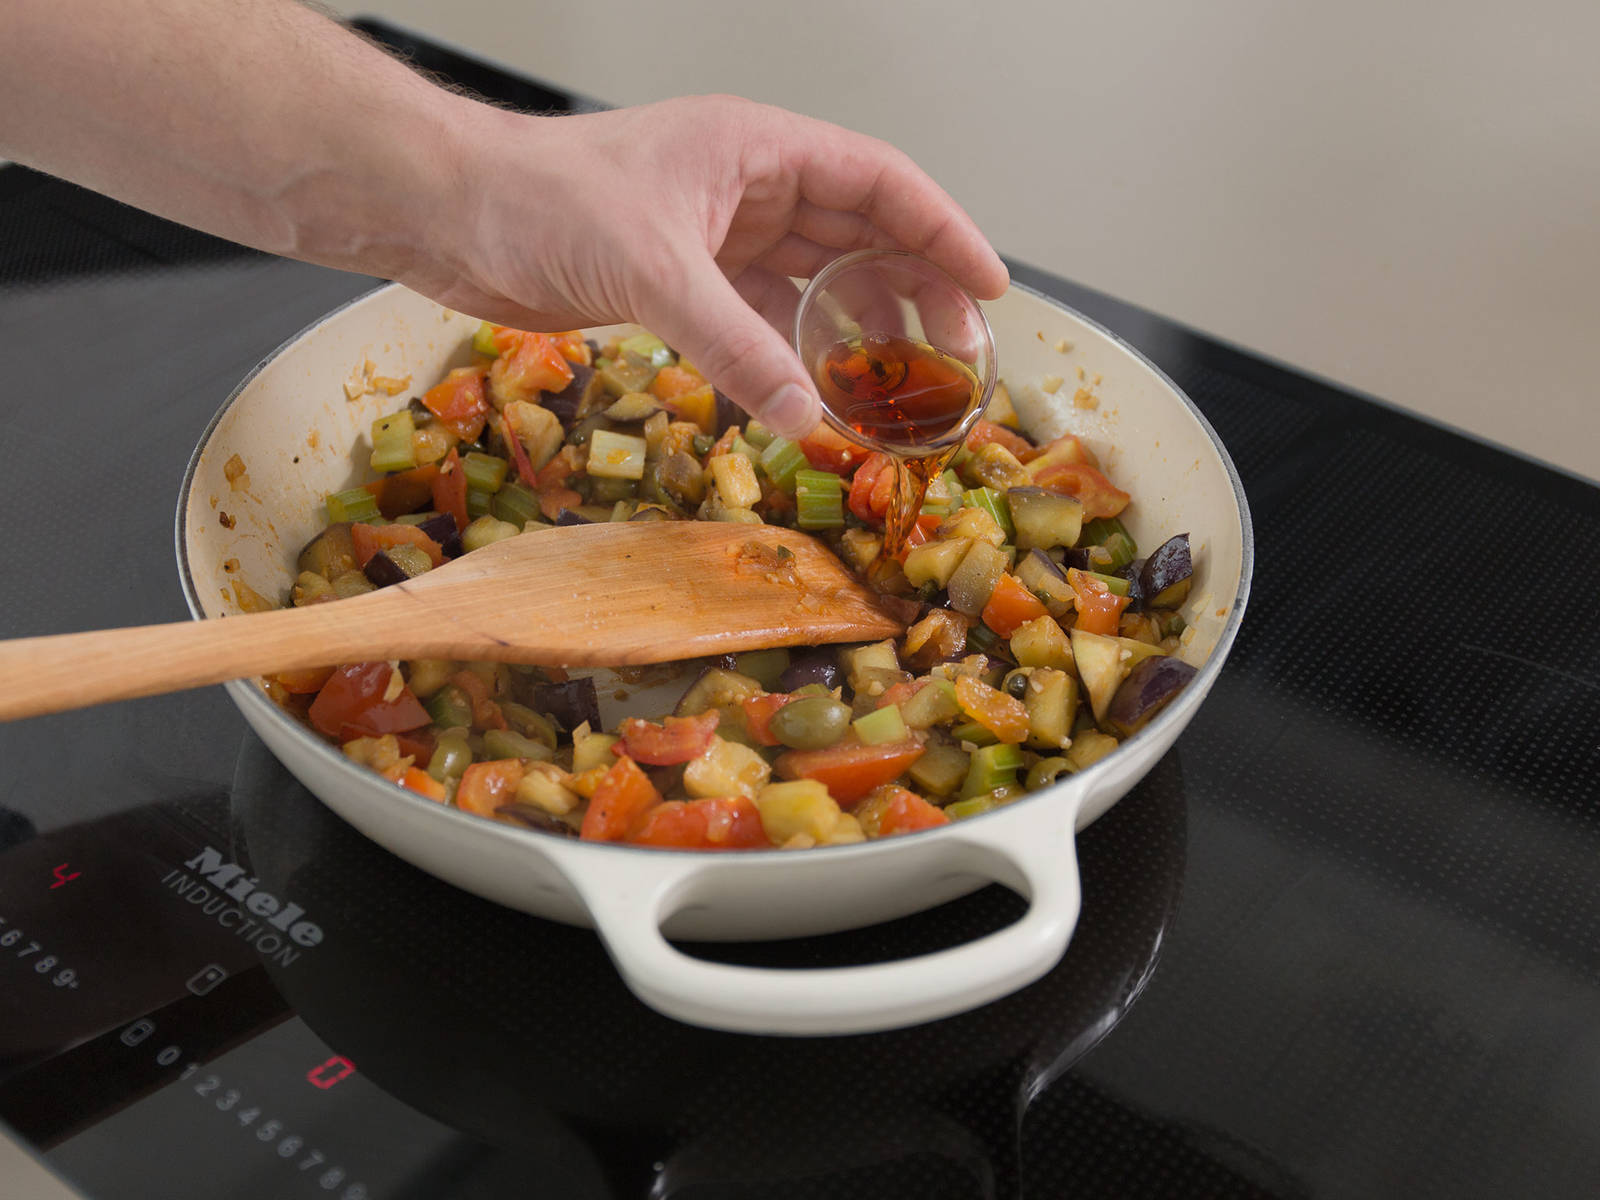 Transfer eggplant to the other pan and stir to combine with the other vegetables. Add red wine vinegar and let it simmer for approx. 10 min. Season with salt and pepper and serve with freshly chopped basil, toasted pine nuts, and olives. Enjoy!